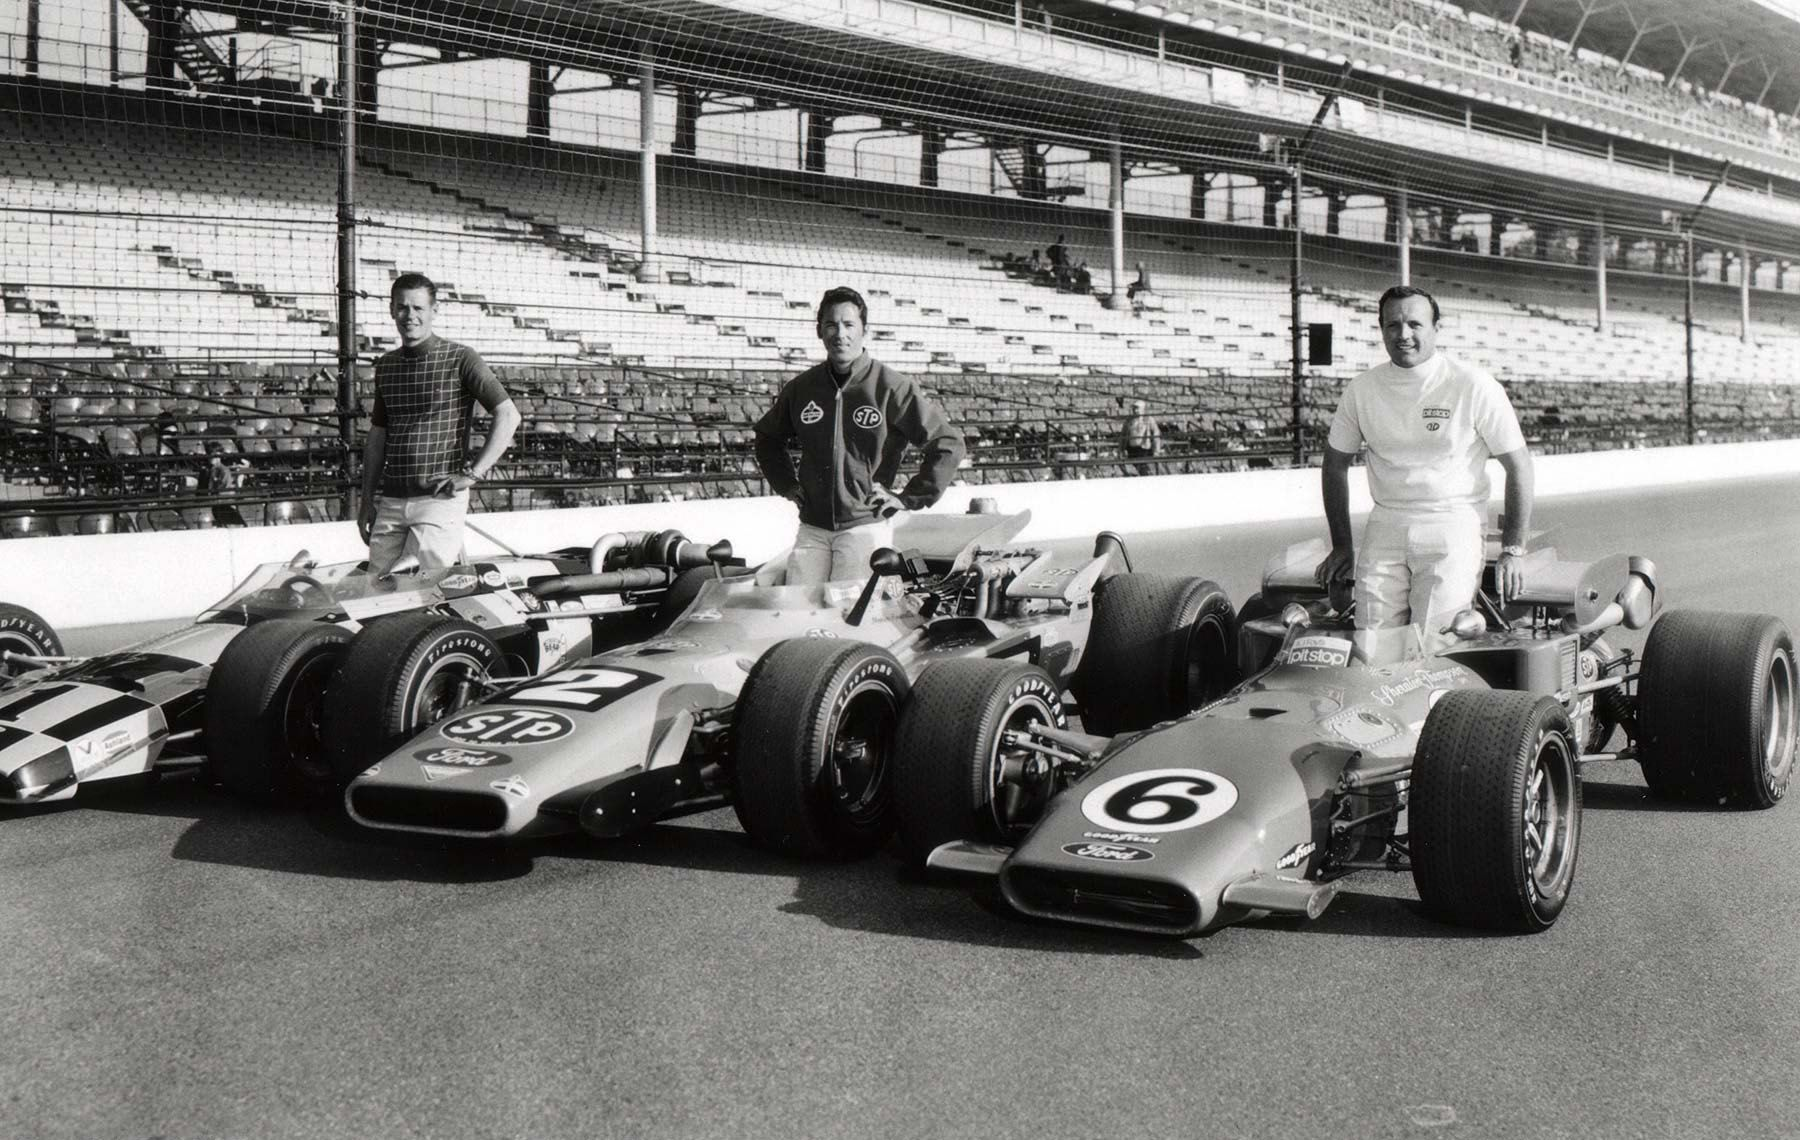 Indy 500 1969 A Great Way To Win A Bar Bet Ask A Racing Buff Who Is Pictured In This Photo Of The 1969 Front Ro Indy Car Racing Classic Racing Cars Indy 500